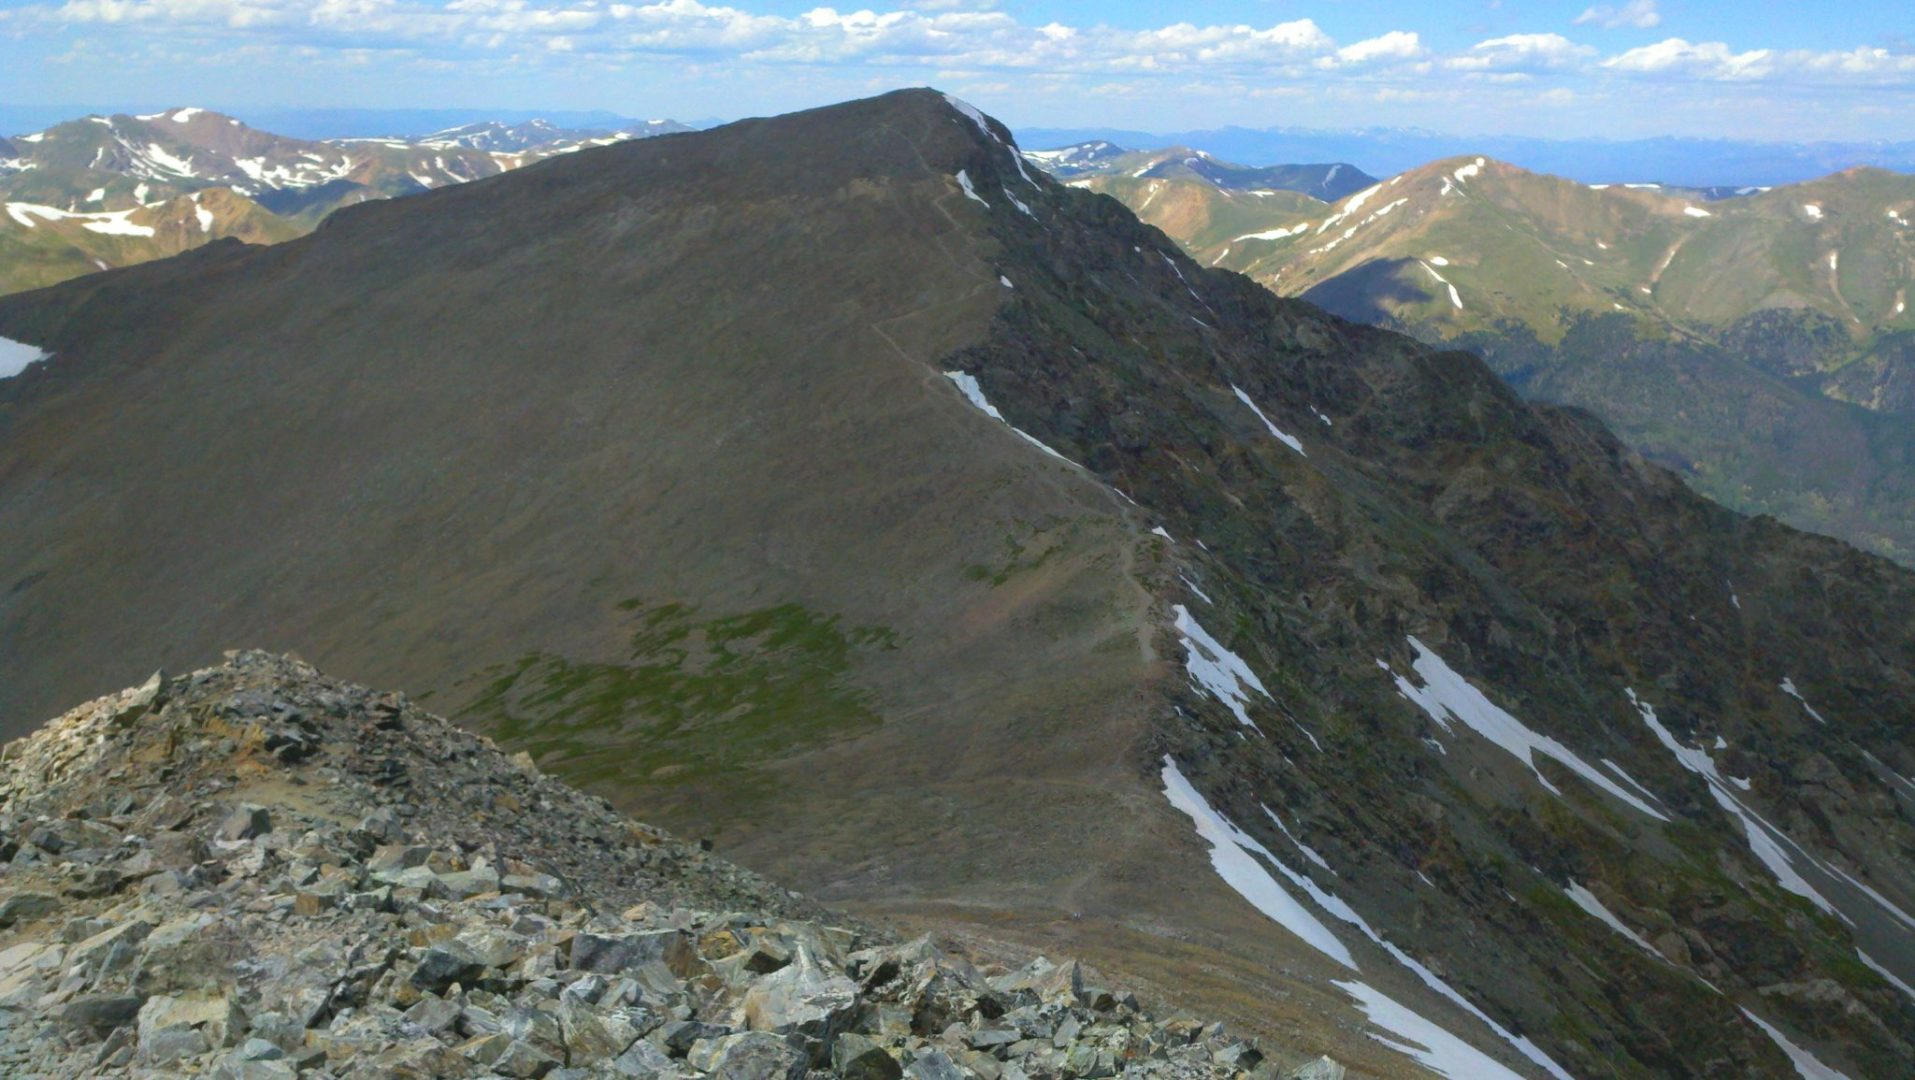 View of Grays Peak